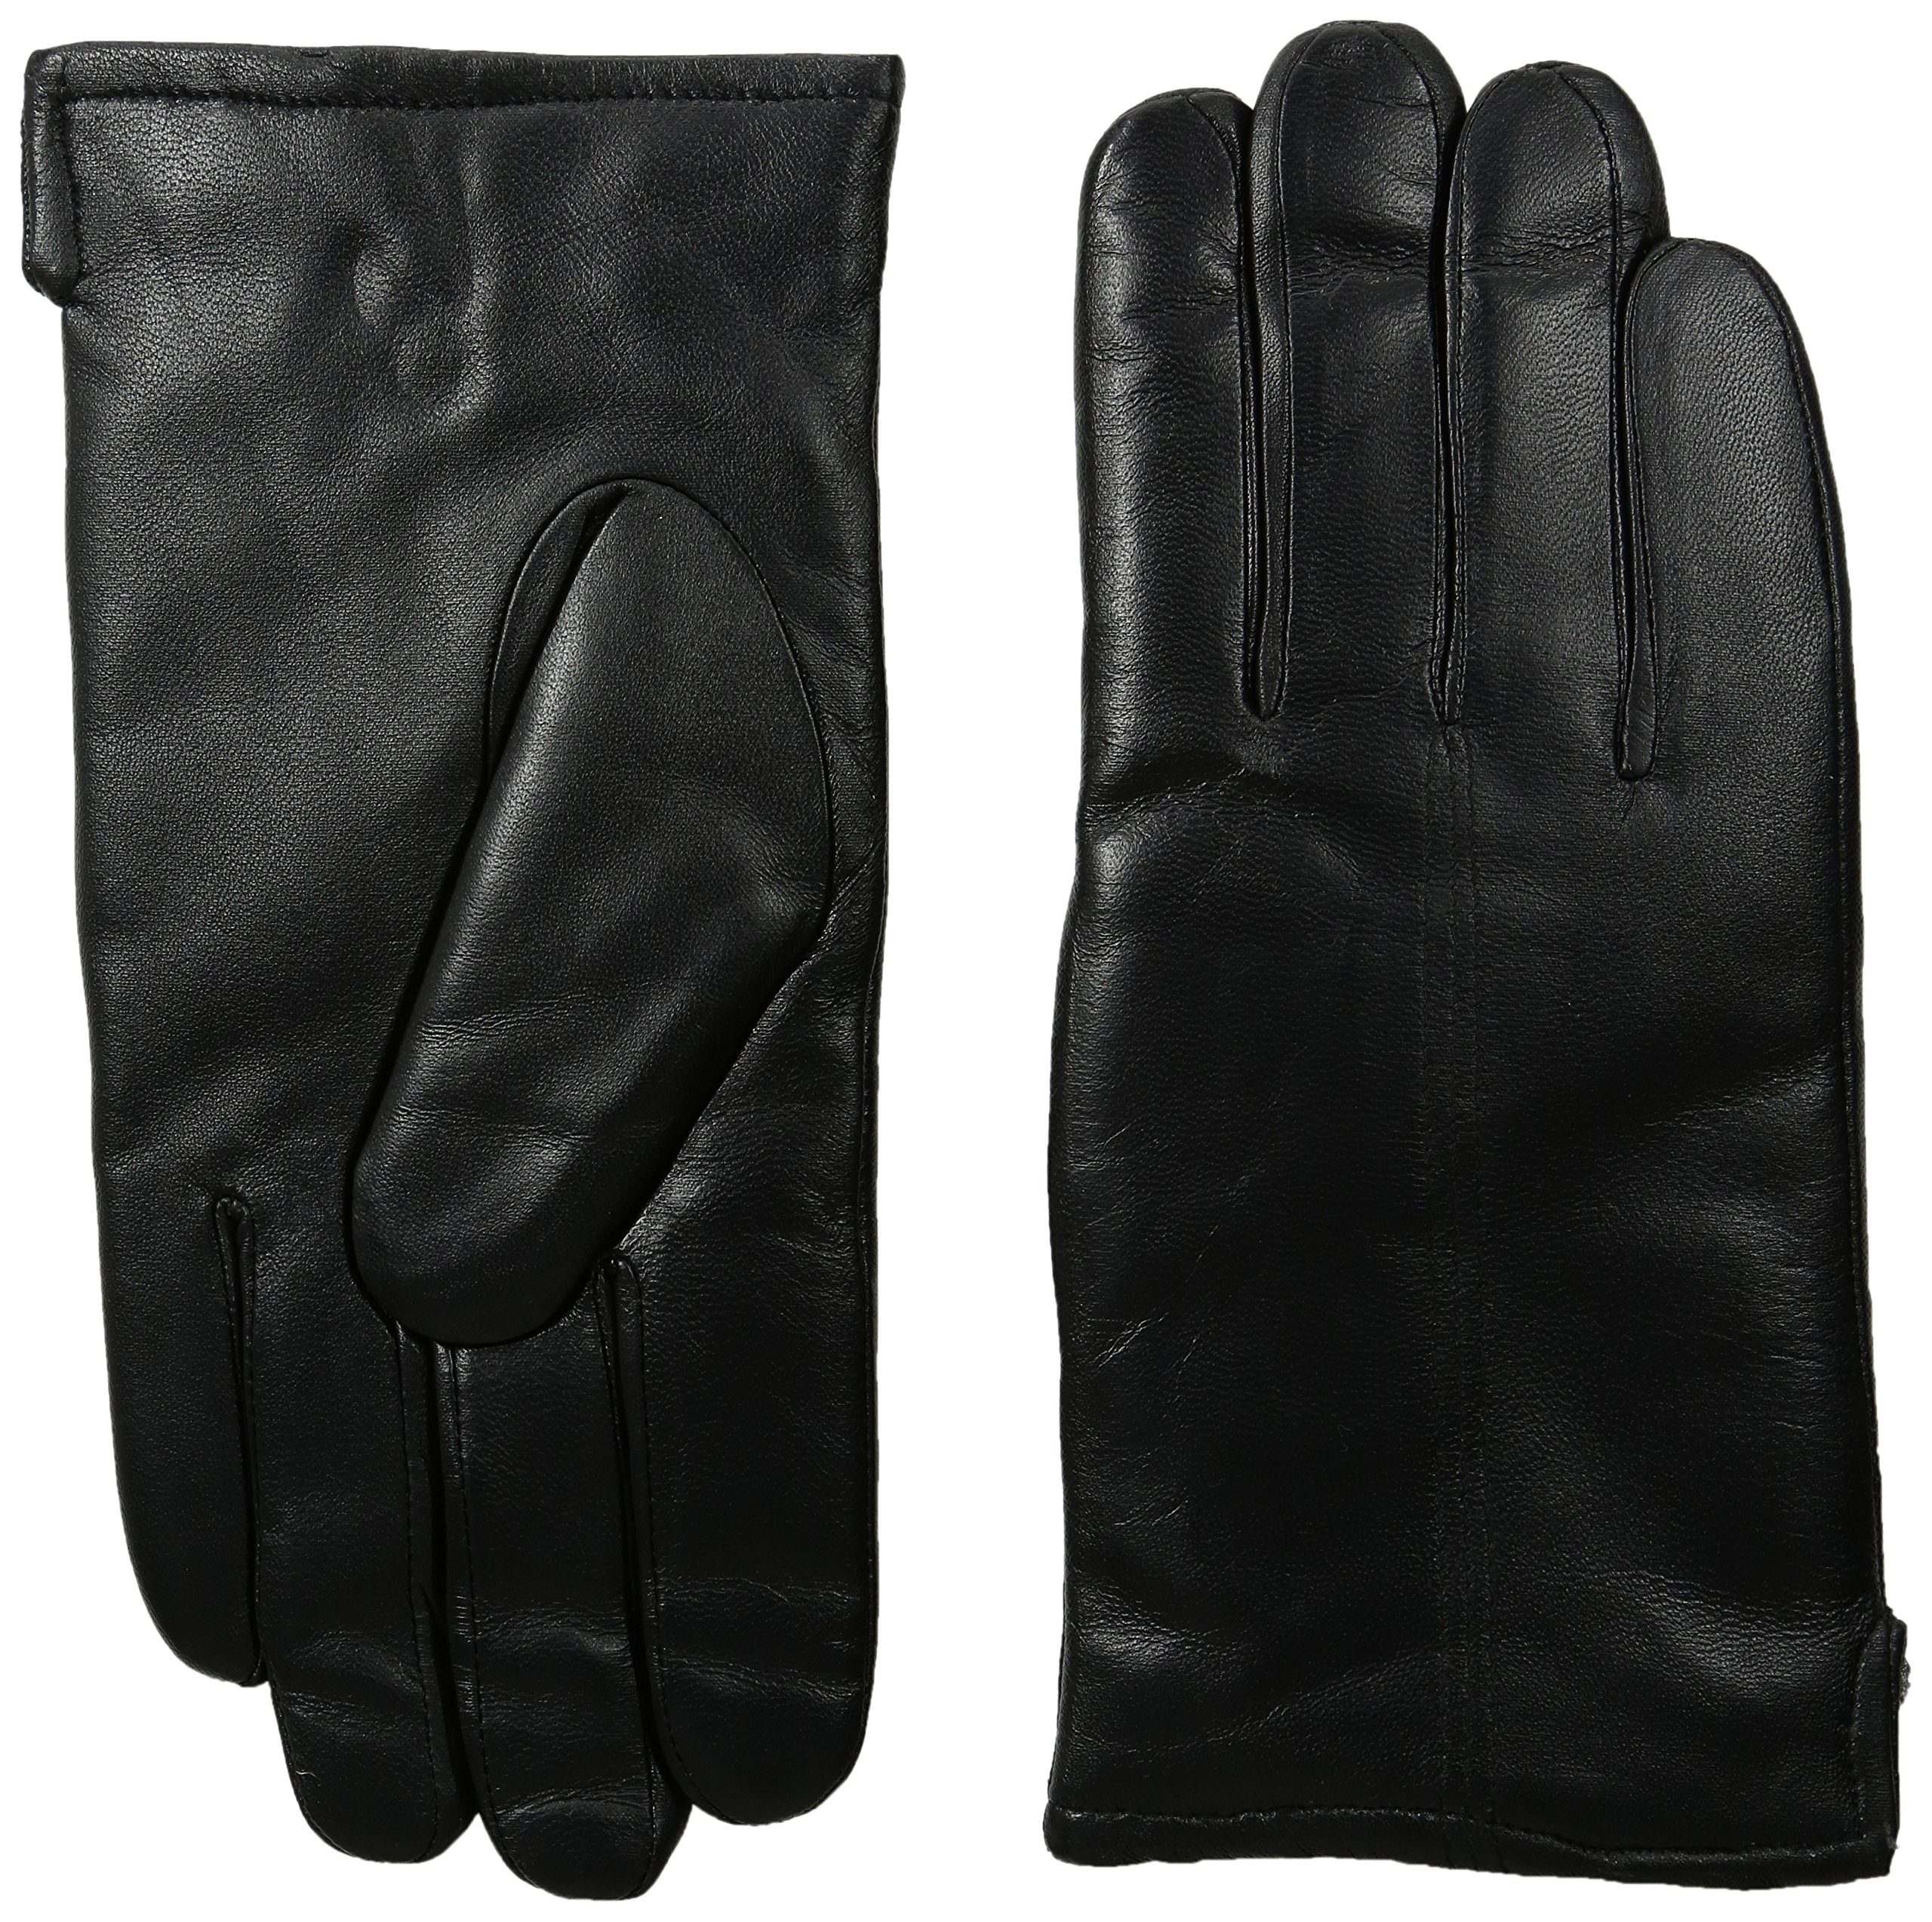 GII Men's Fine Leather Gloves with Microplie Lining, Black, X-Large